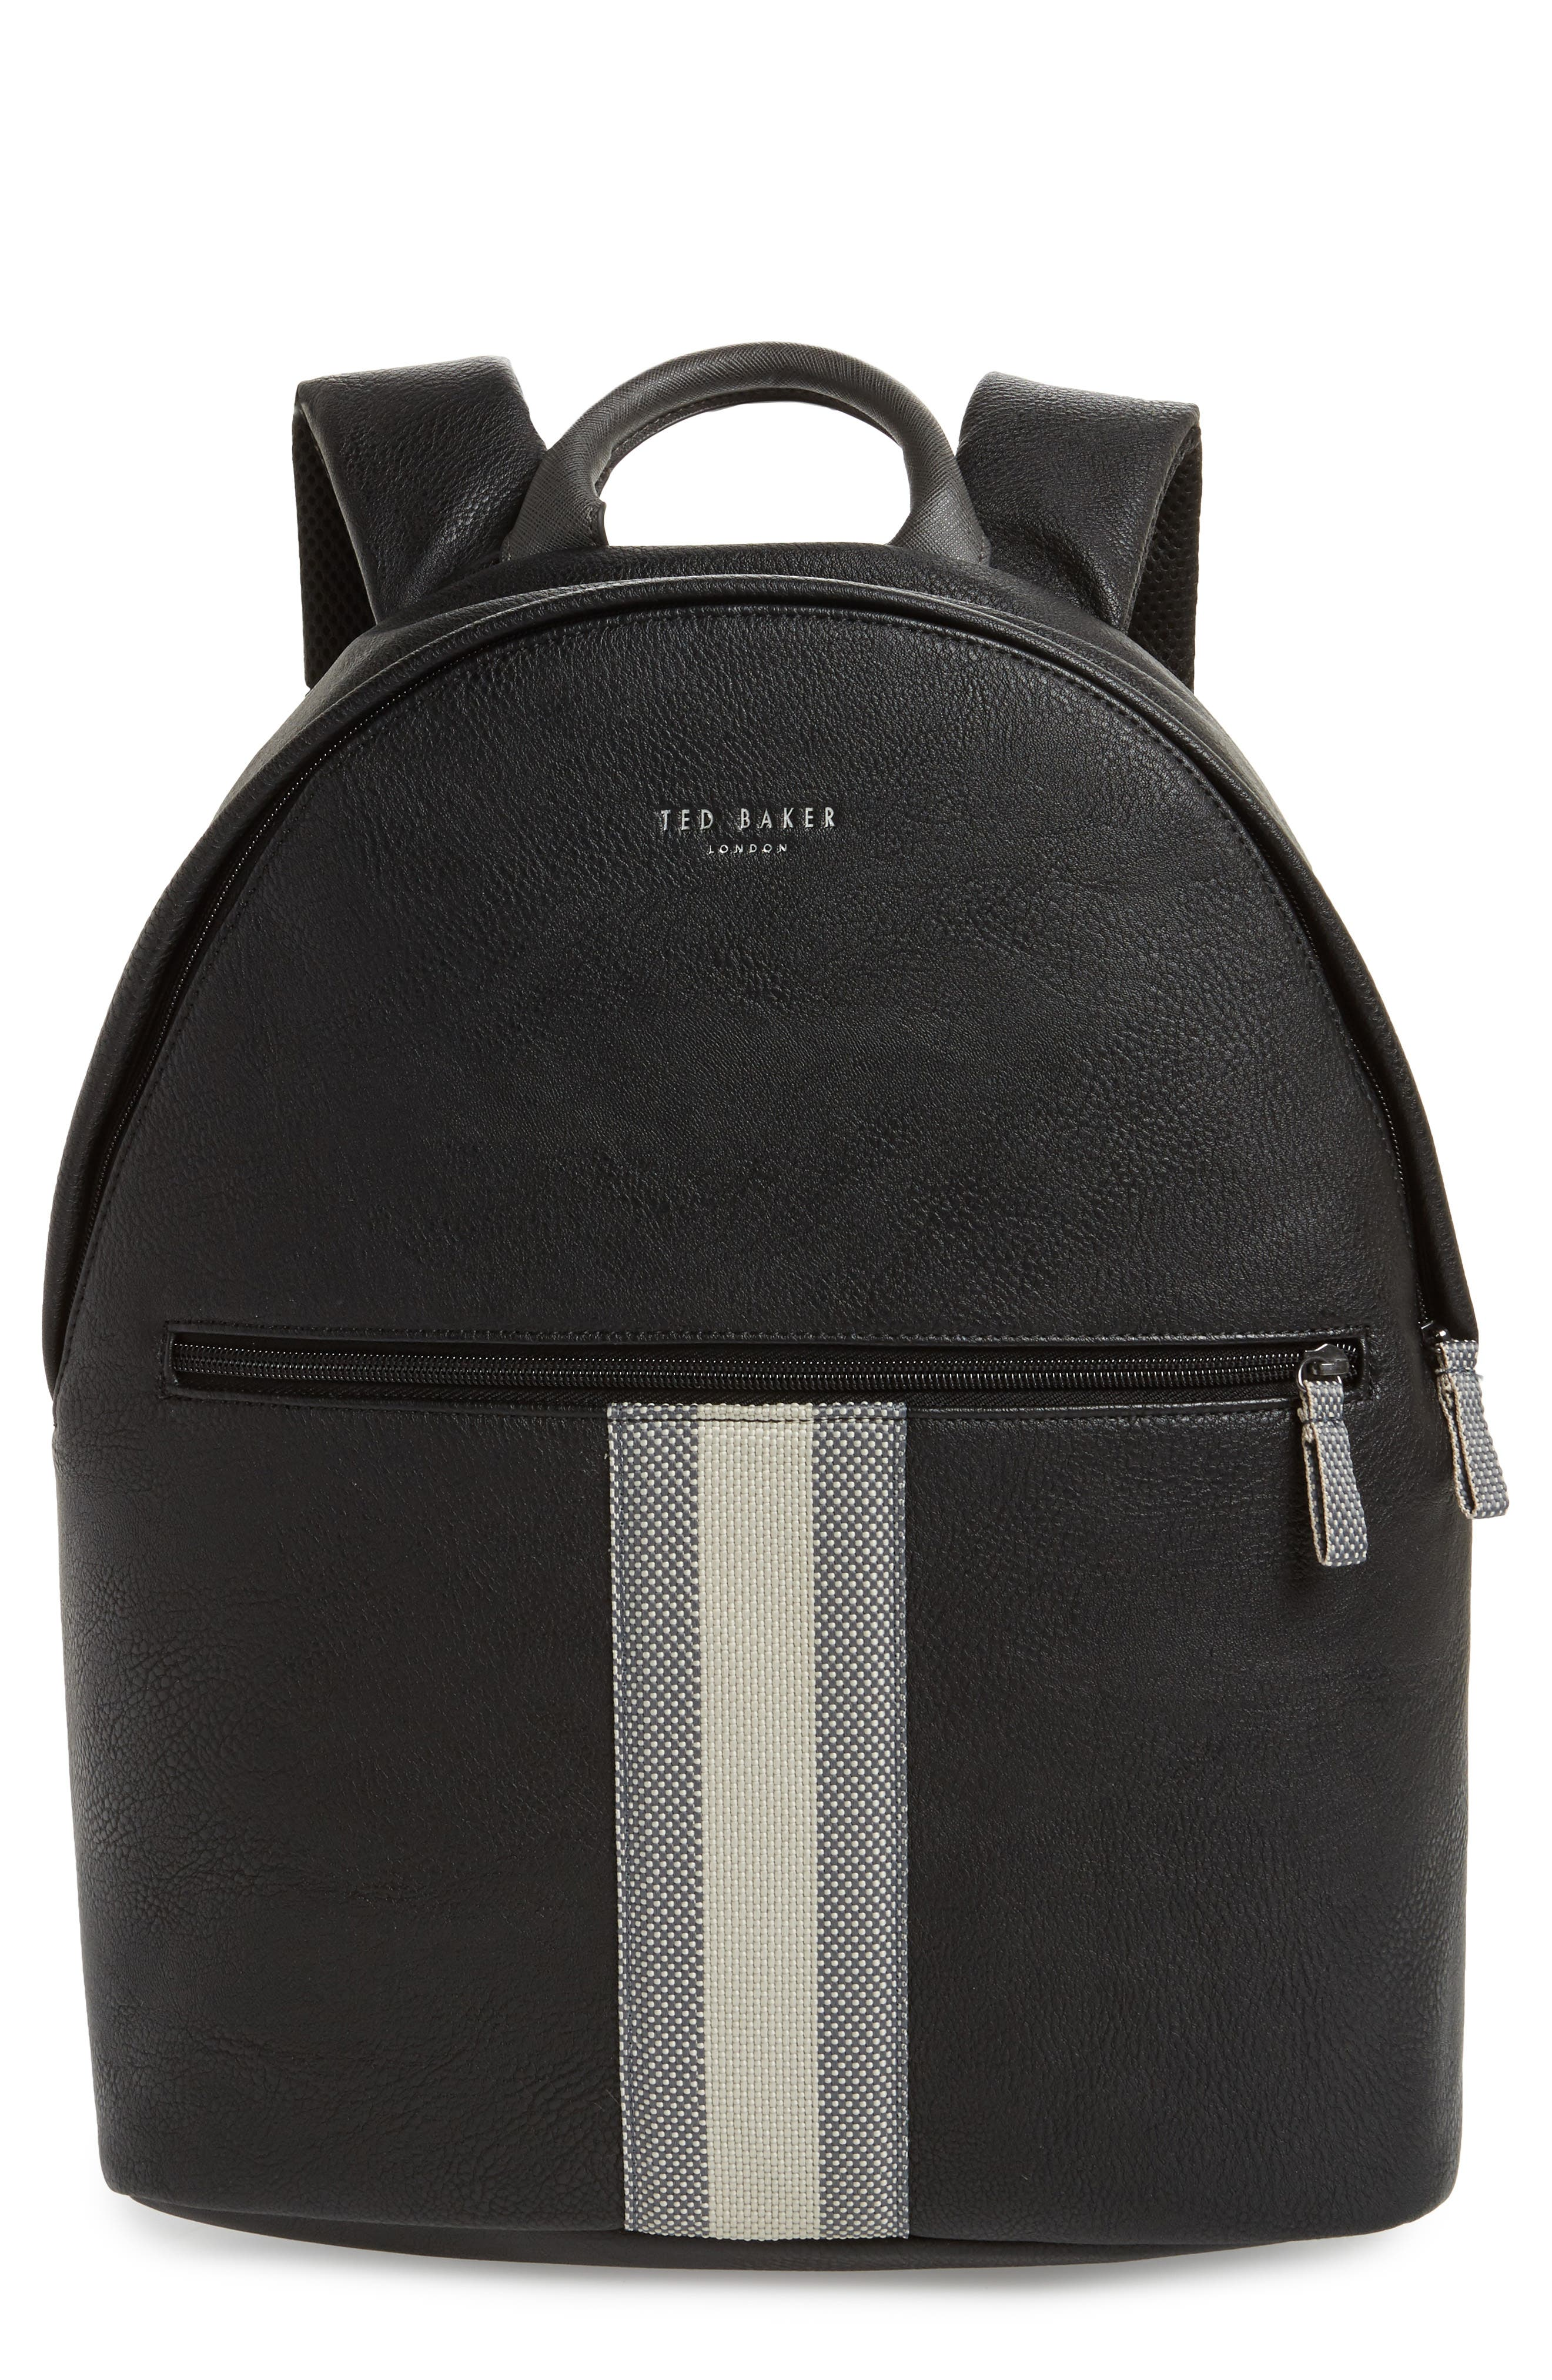 Royale Backpack,                         Main,                         color,